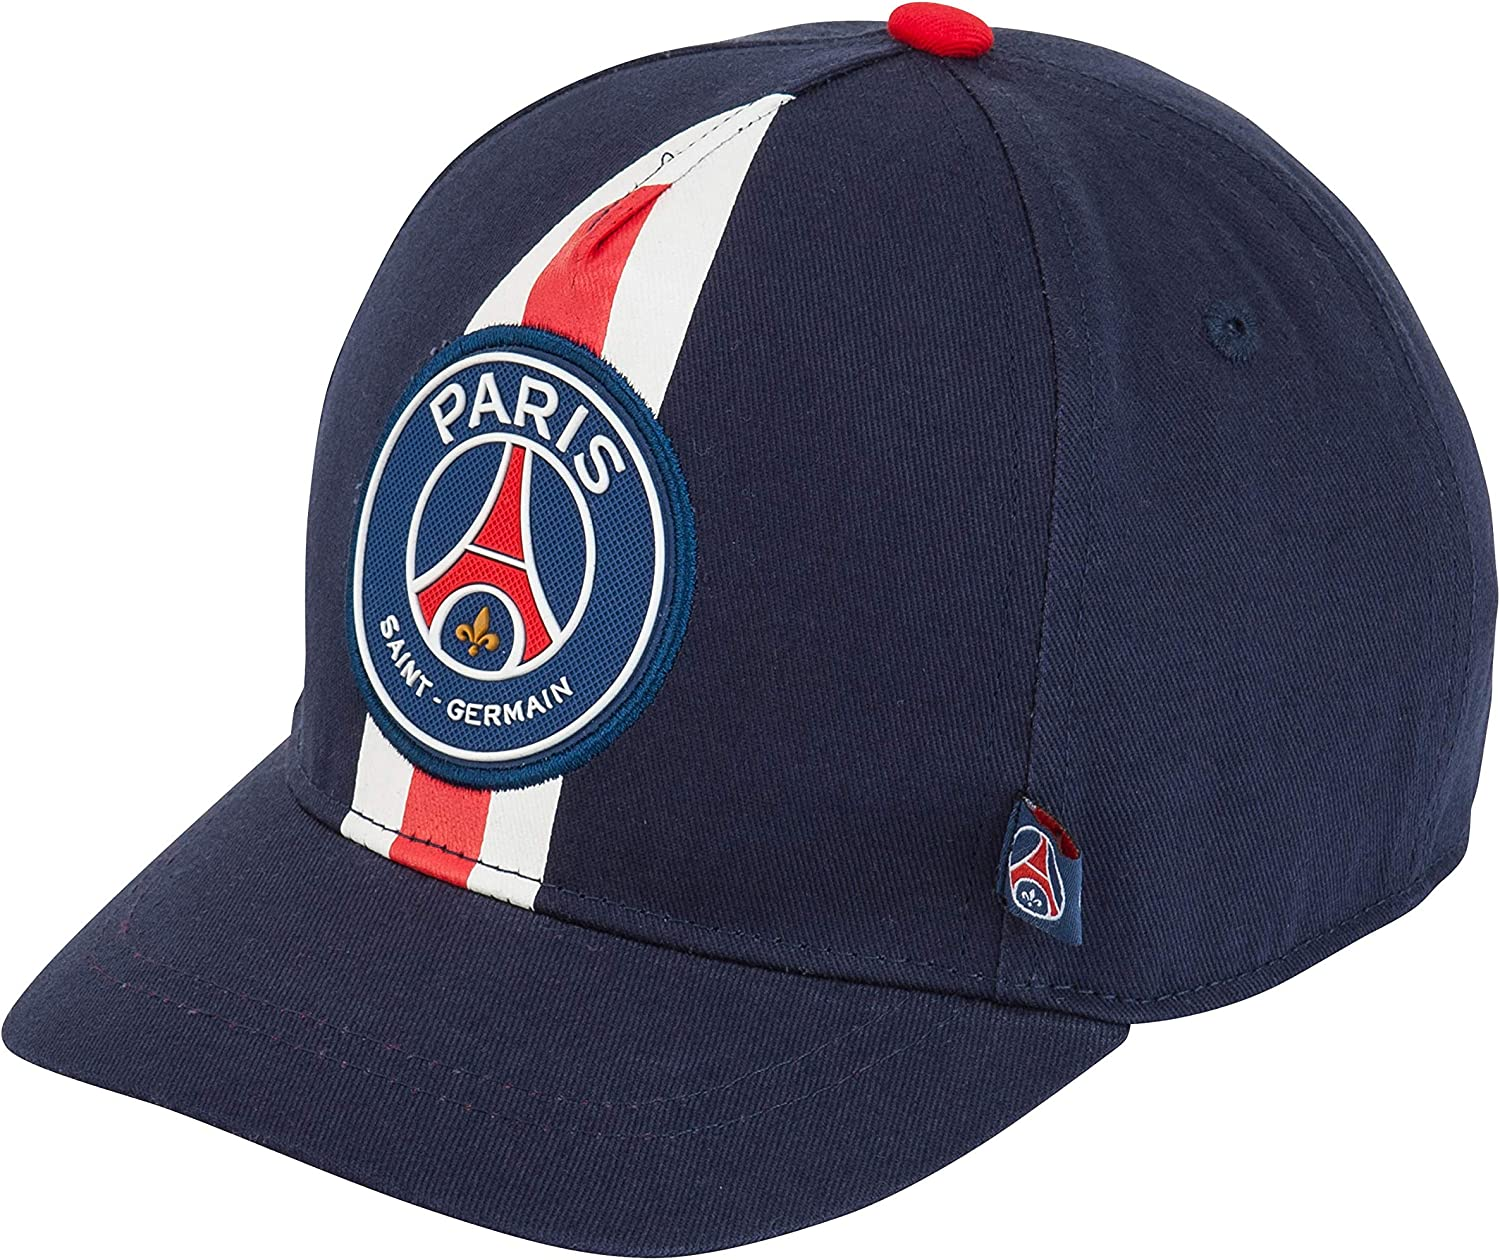 PARIS SAINT GERMAIN Gorra bebé PSG - Colección Oficial: Amazon.es ...